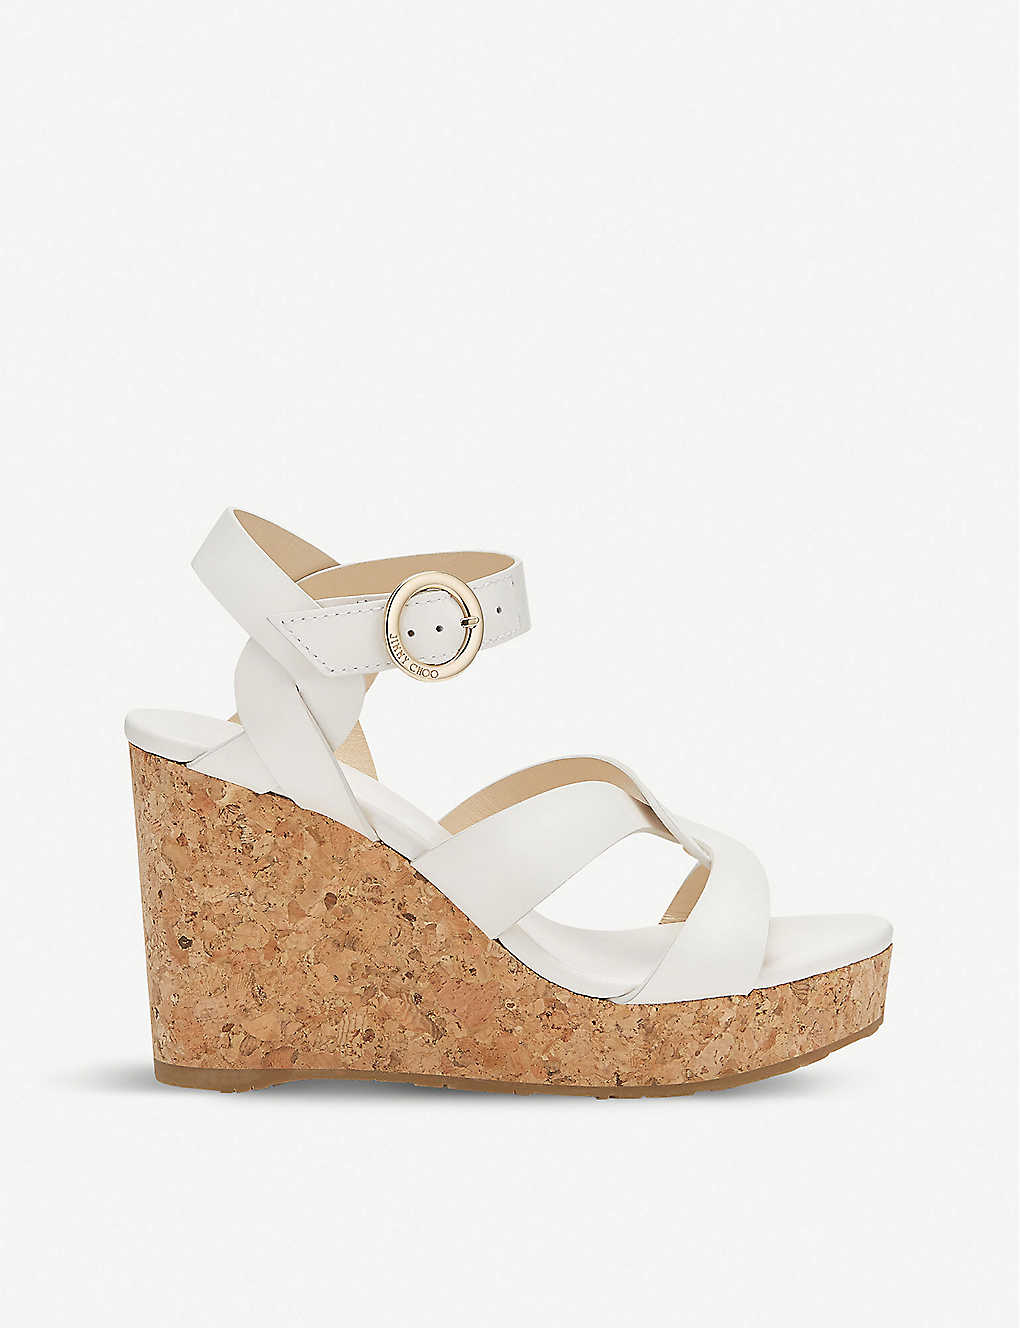 JIMMY CHOO: Aleili Vachetta leather wedge heels